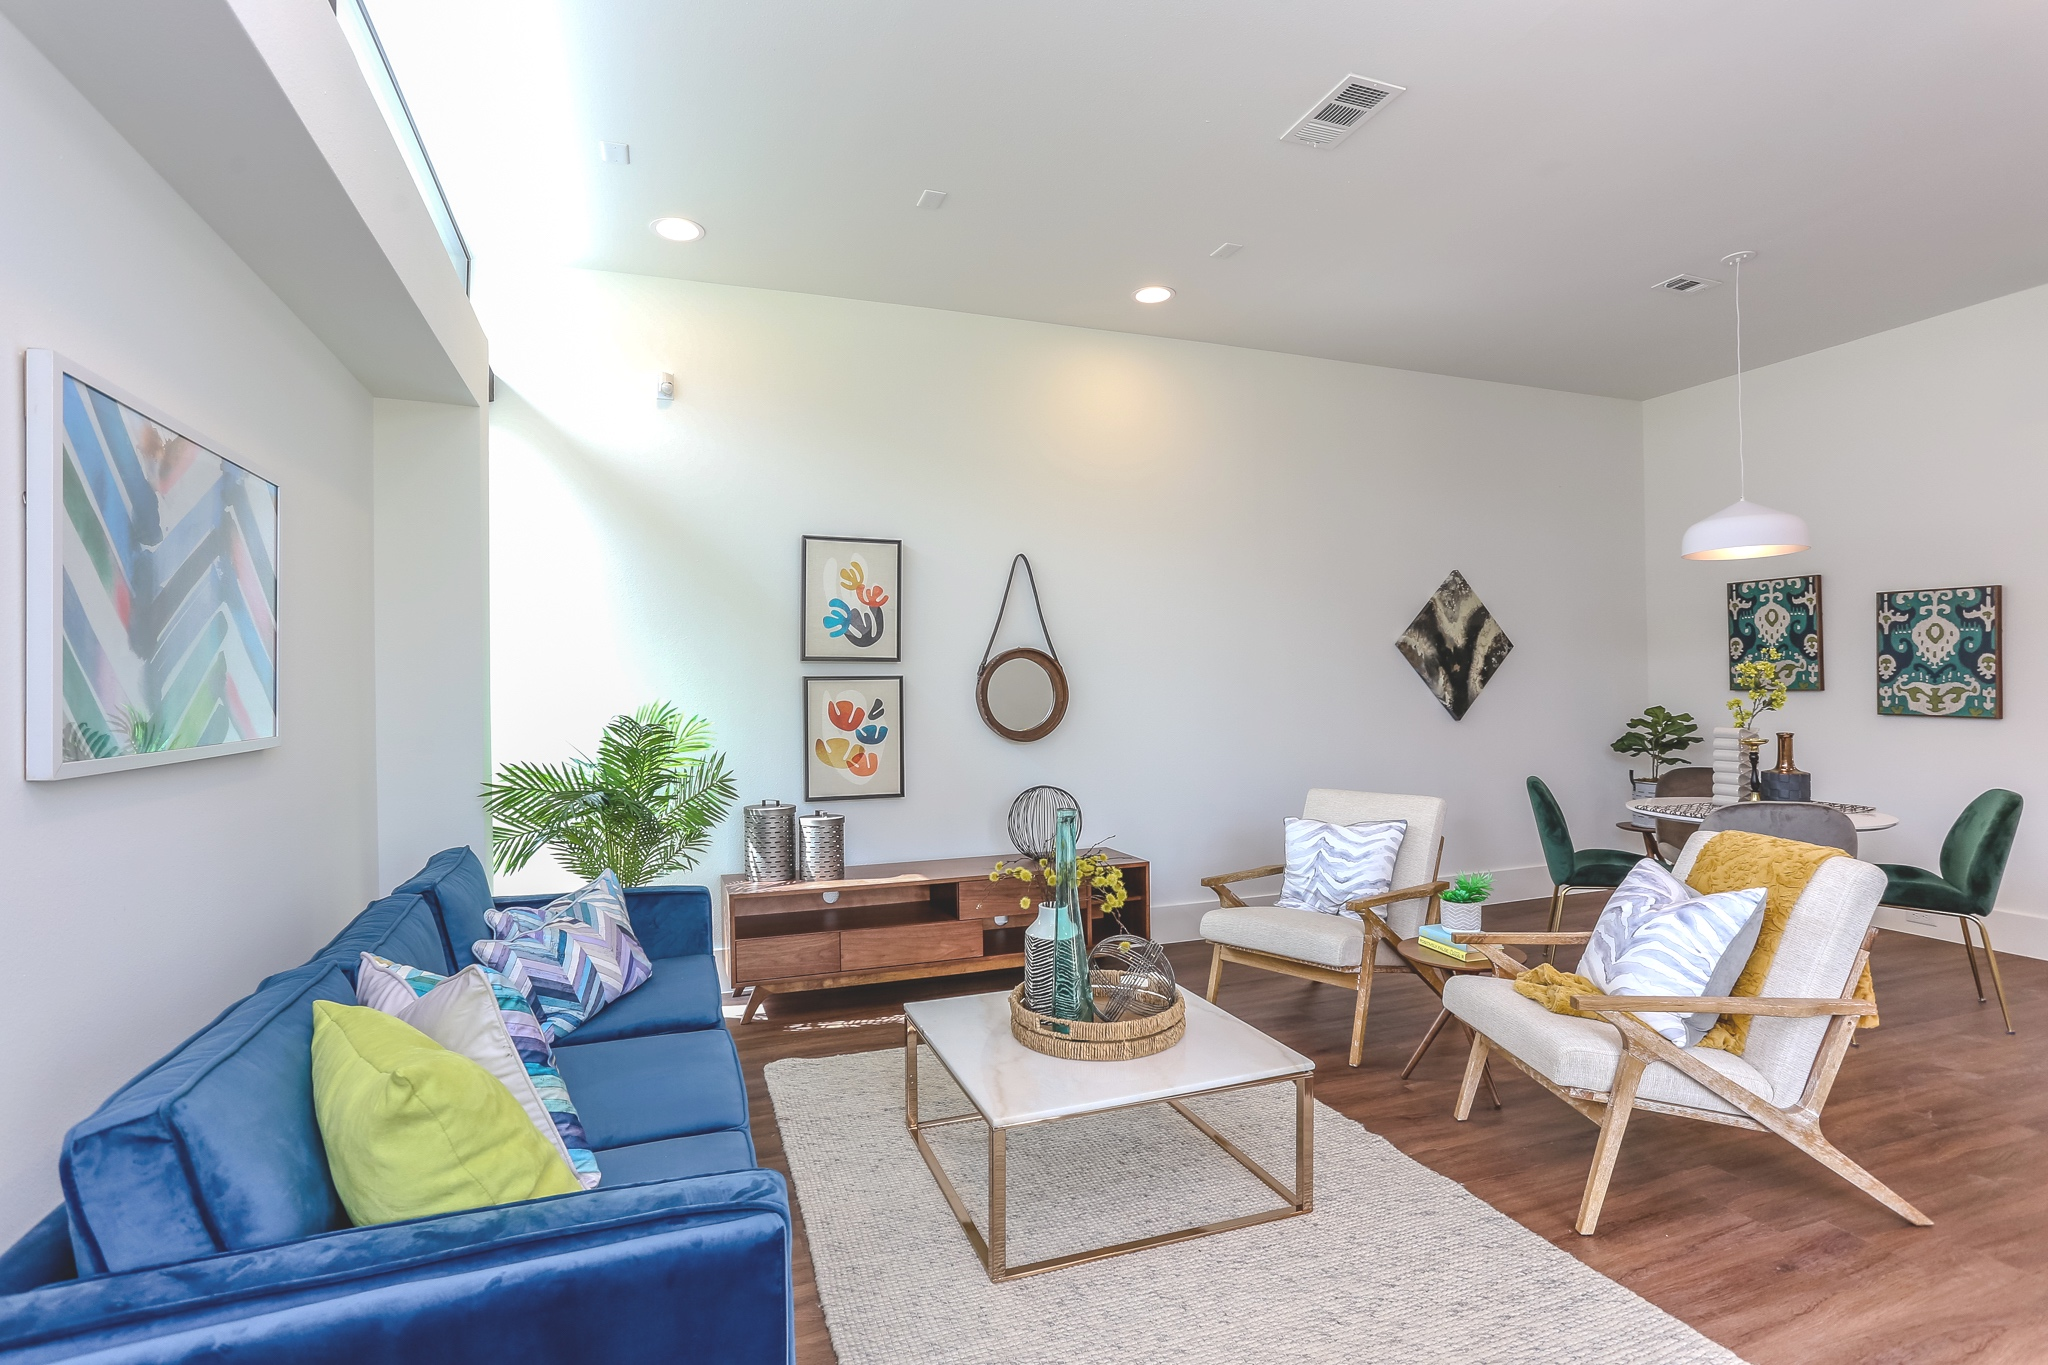 The chic living room features recessed lighting and is pre-wired for surround sounds, cable television, and internet.